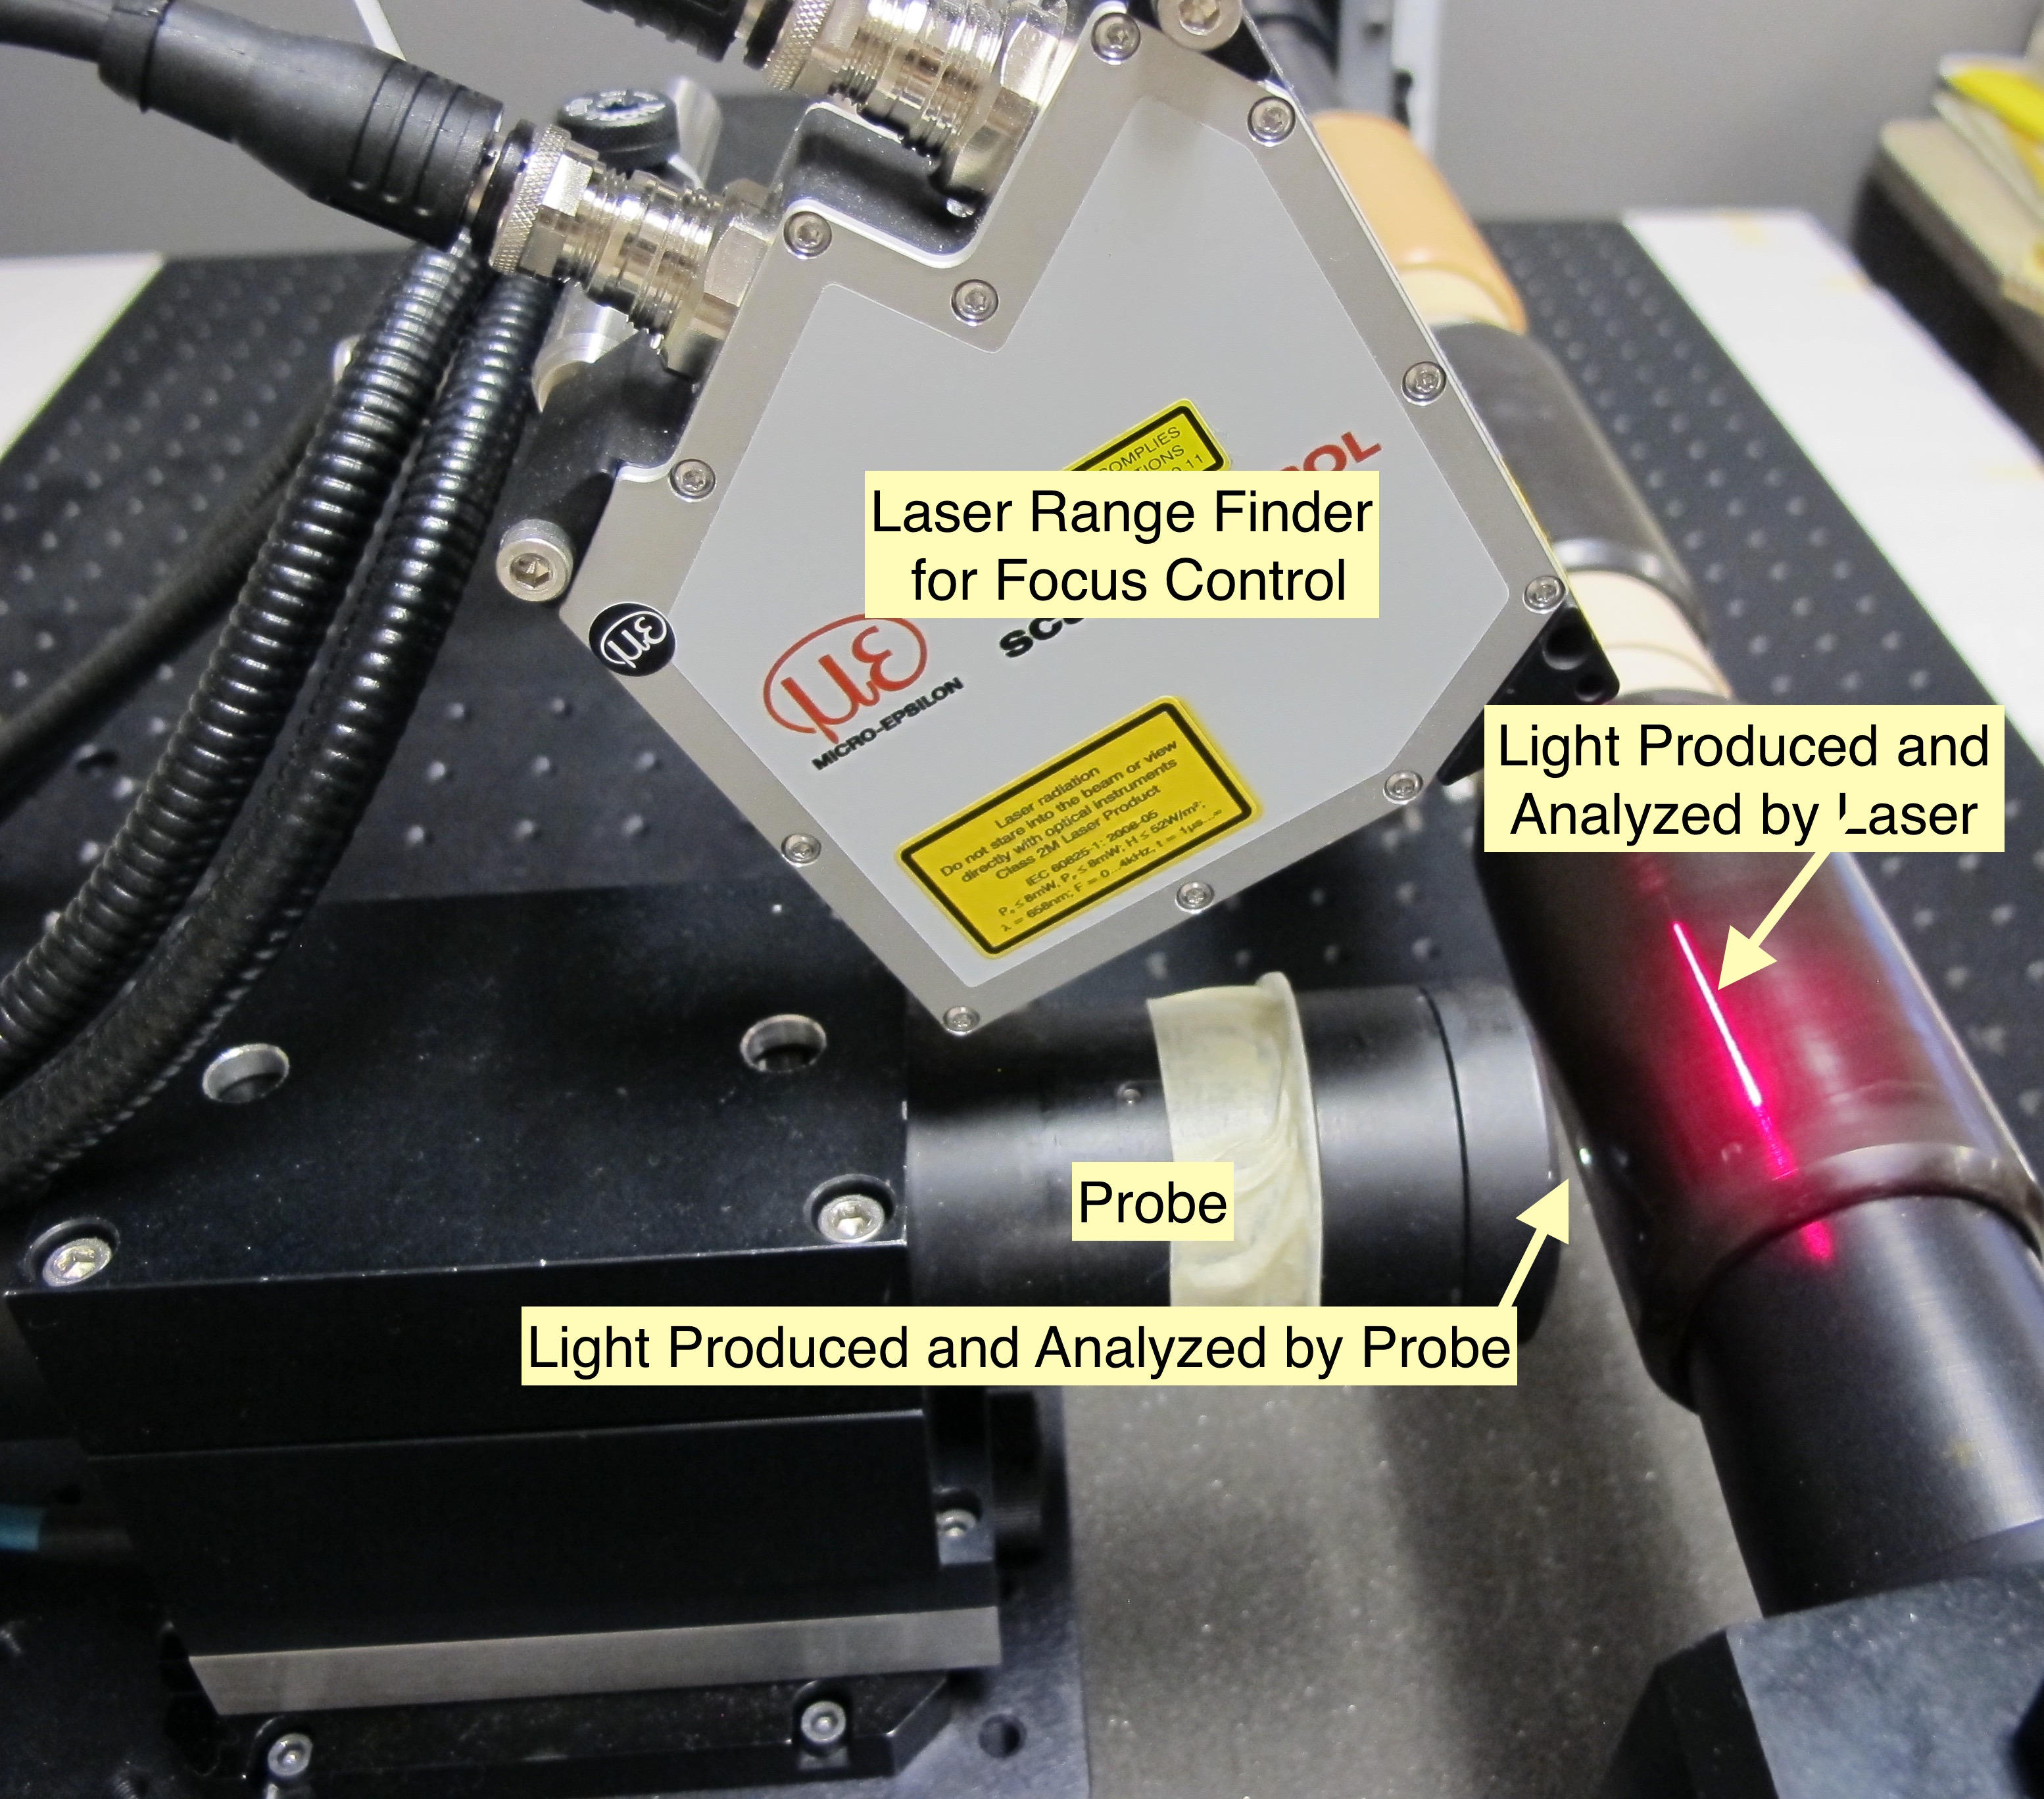 Laser and probe annotated